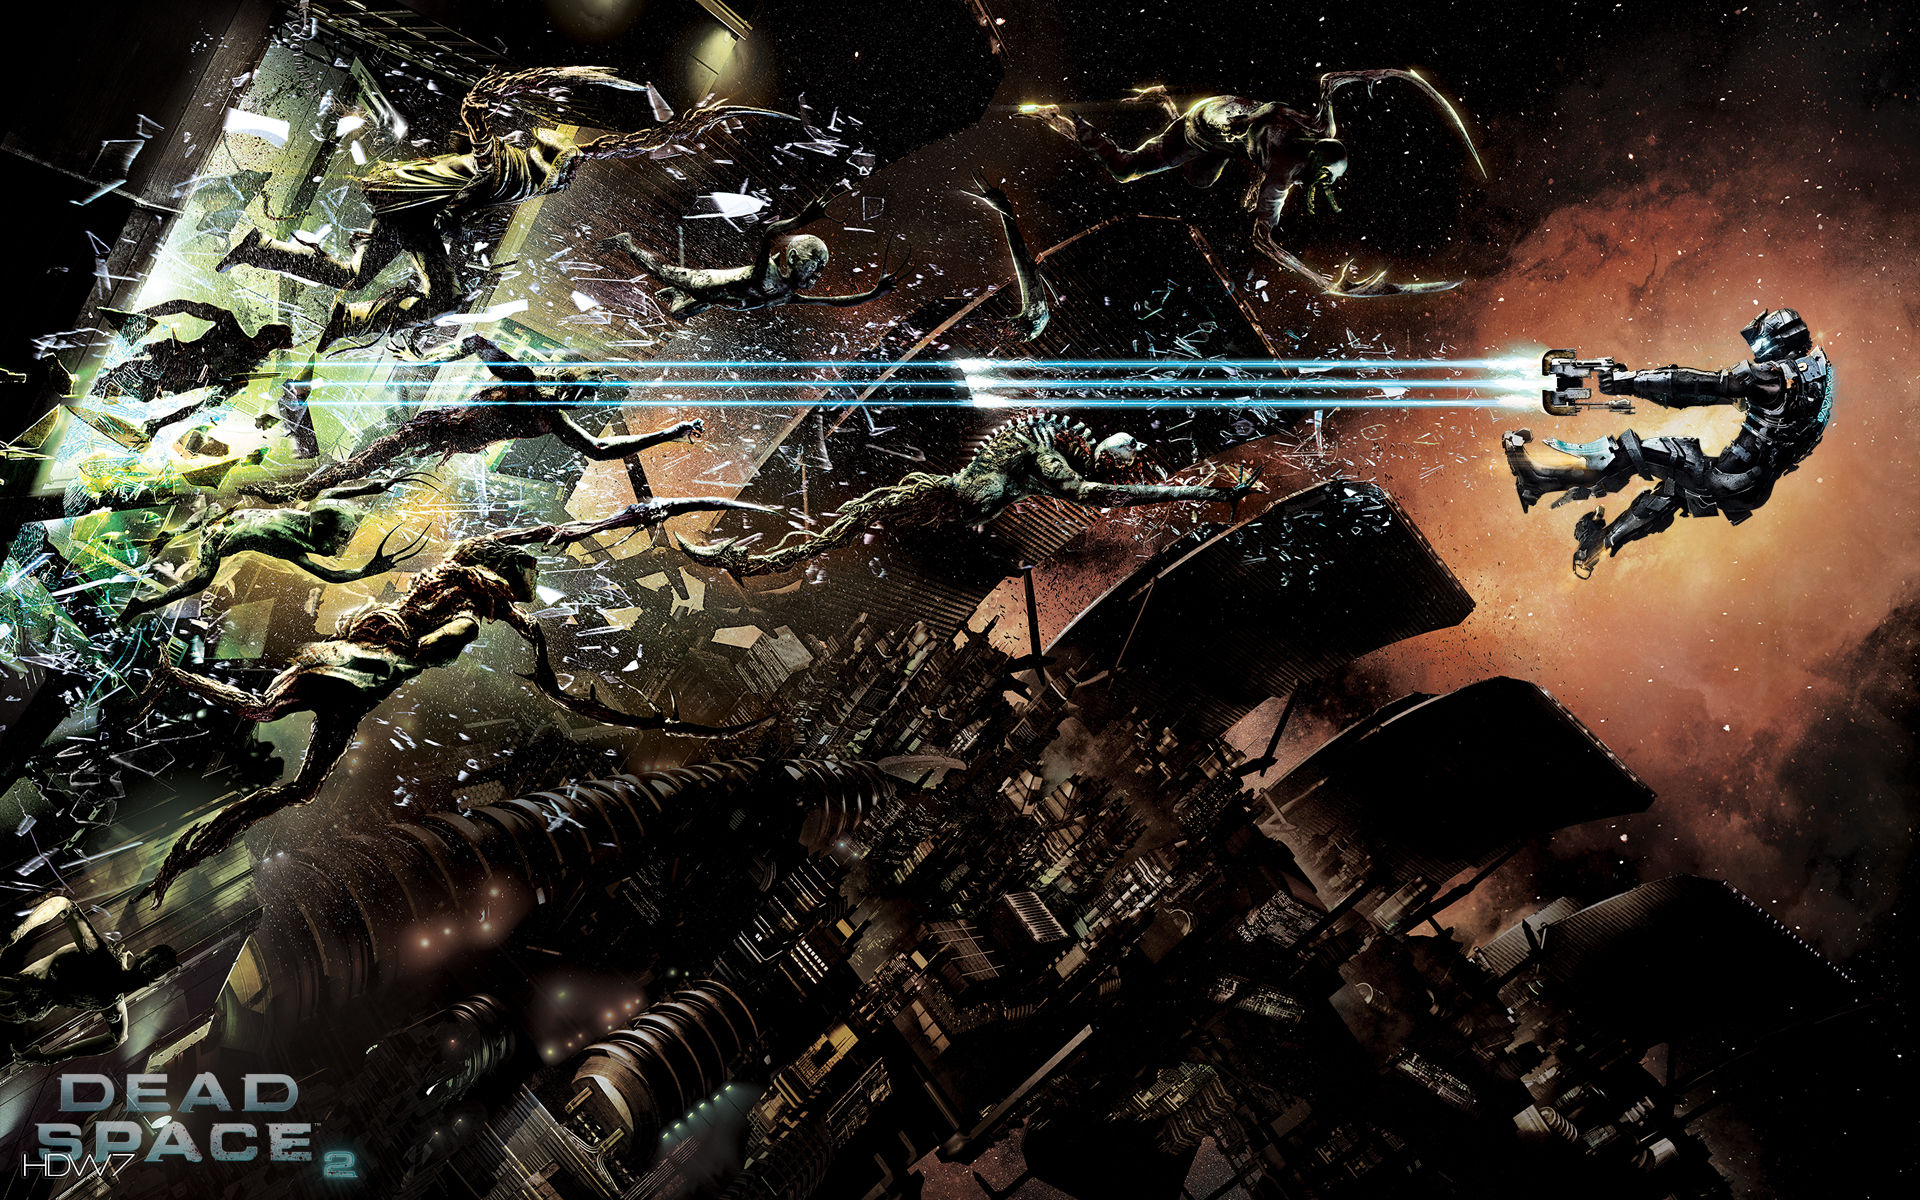 dead space 2 sprawl fight widescreen wallpaper